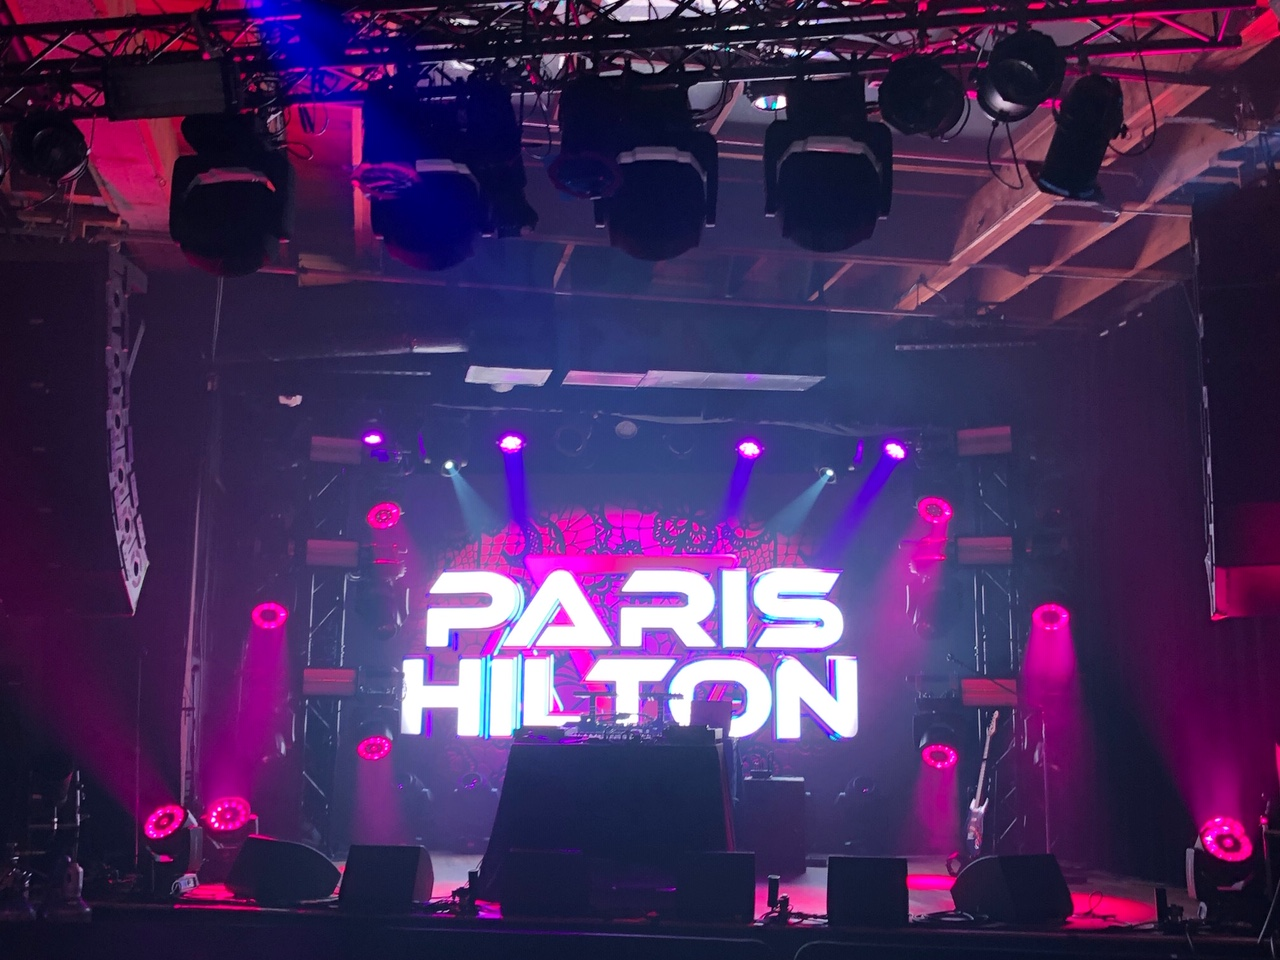 Paris Hilton DJ Set